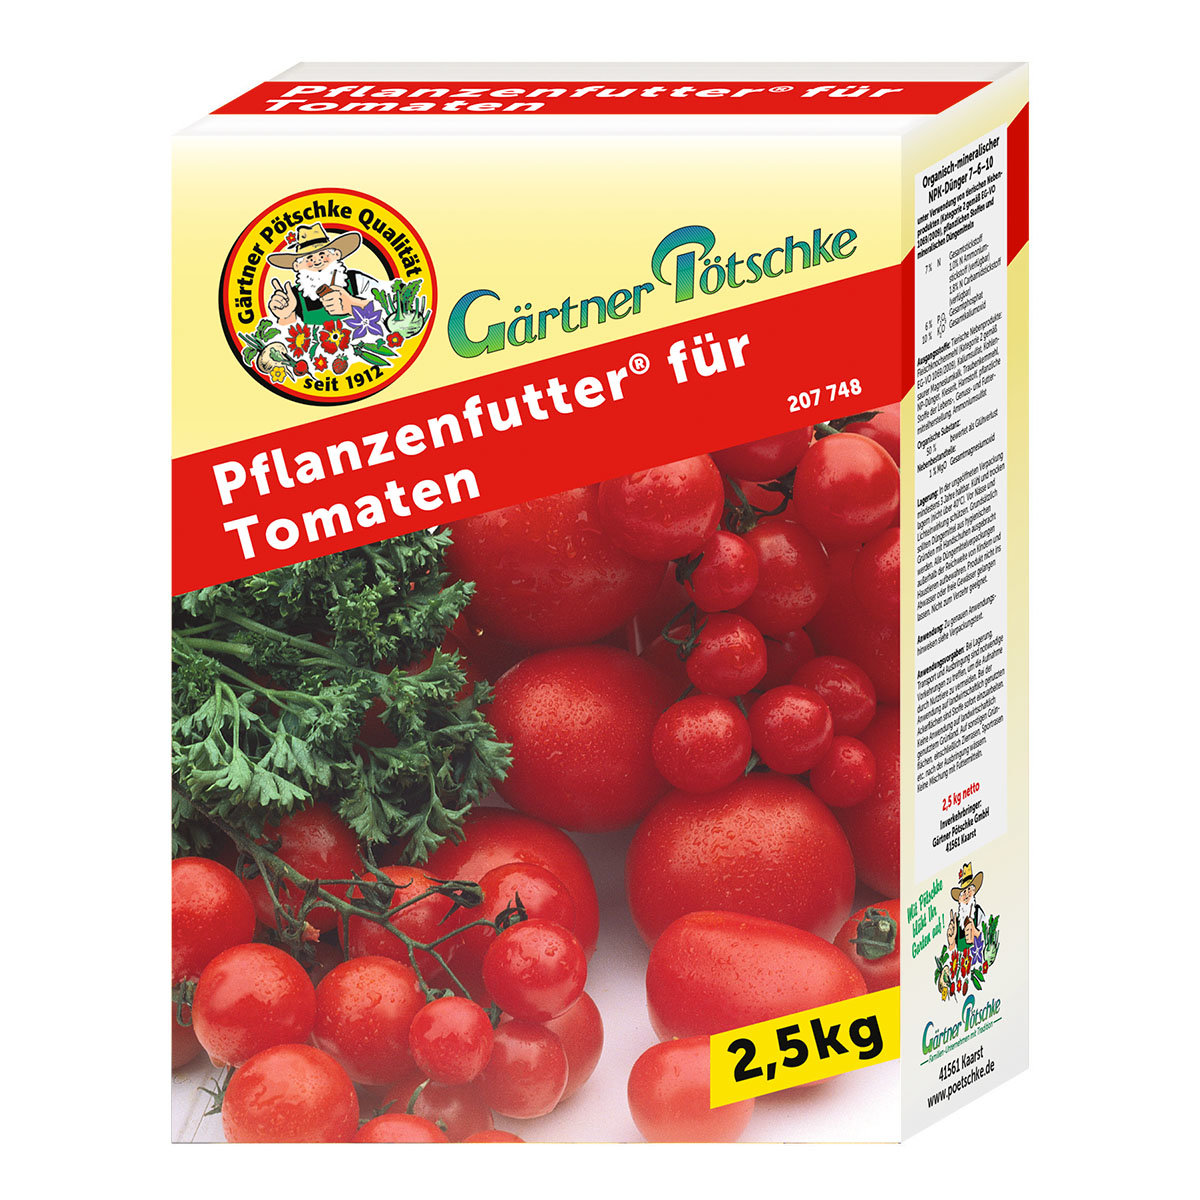 g rtner p tschke pflanzenfutter f r tomaten 2 5 kg von. Black Bedroom Furniture Sets. Home Design Ideas